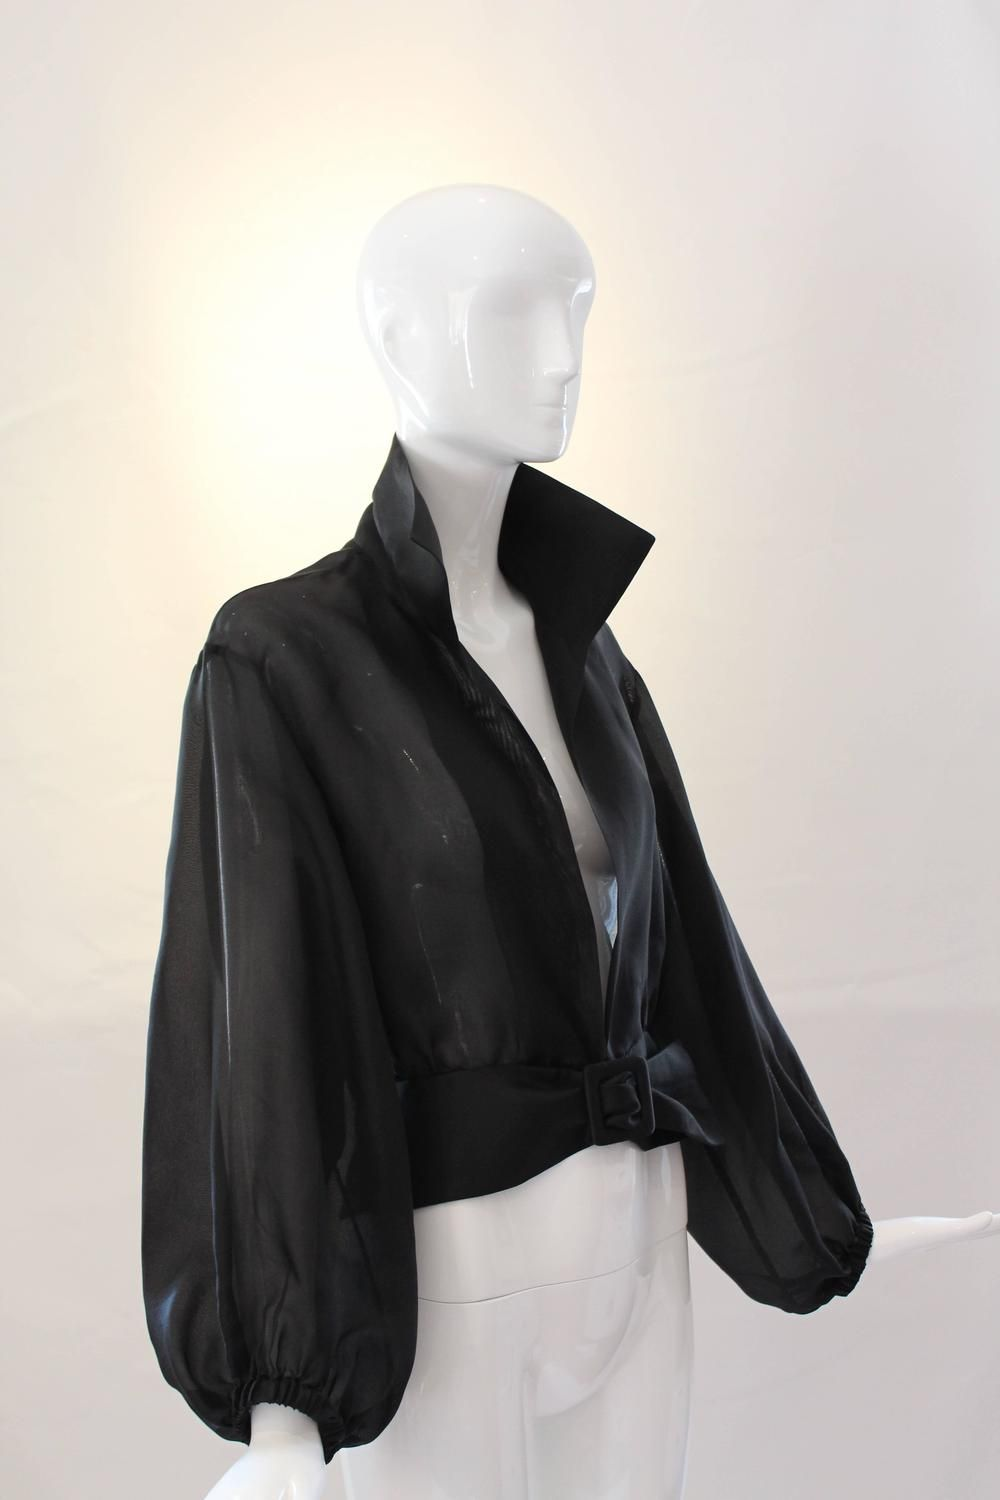 44a7141e3cb Yves Saint Laurent Rive Gauche Black Sheer Blouse Jacket | From a  collection of rare vintage